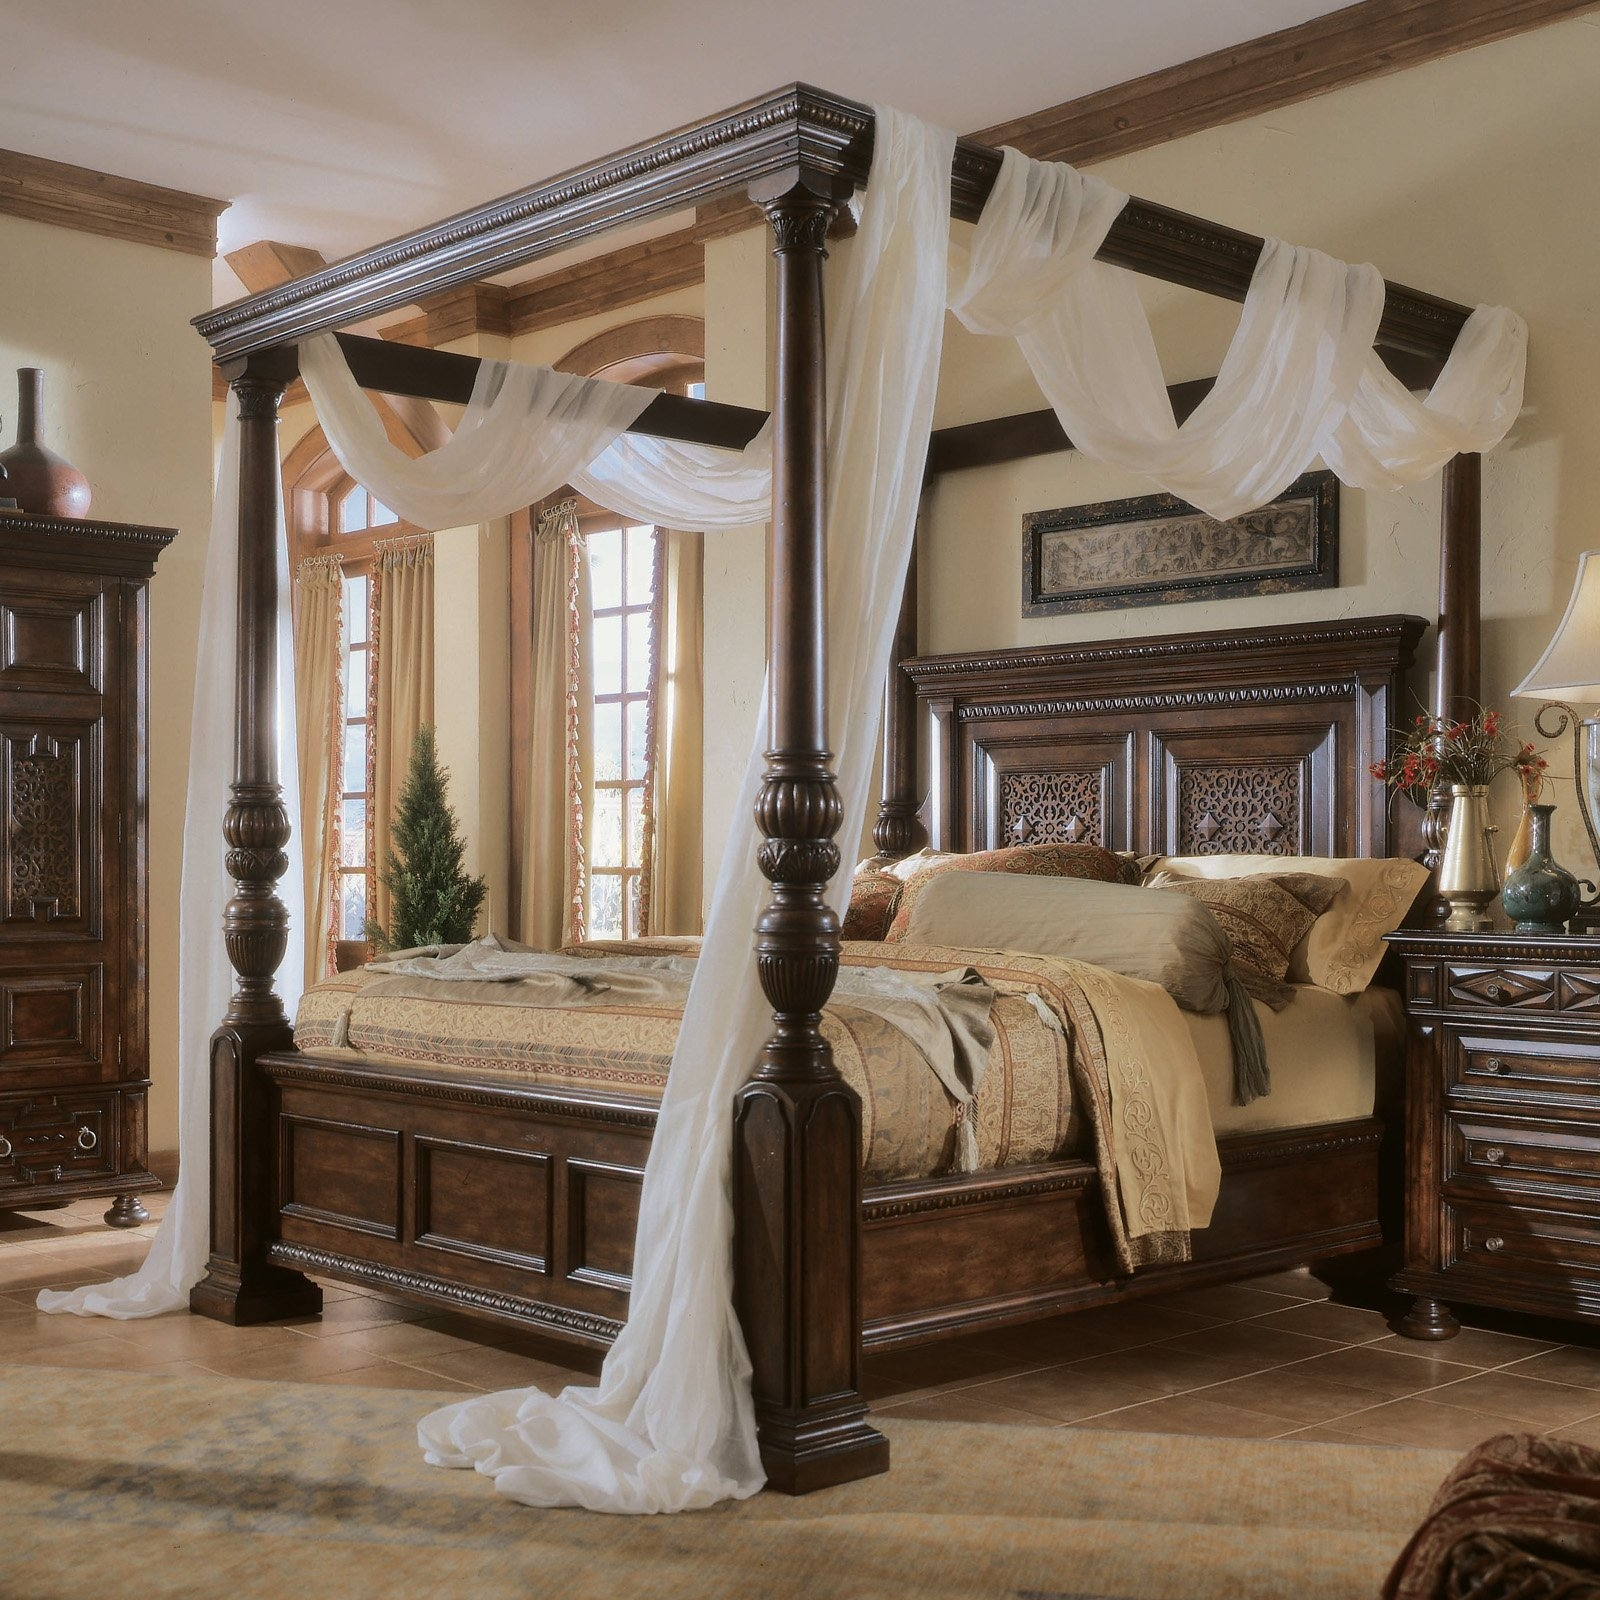 Wooden Canopy Bed Frames